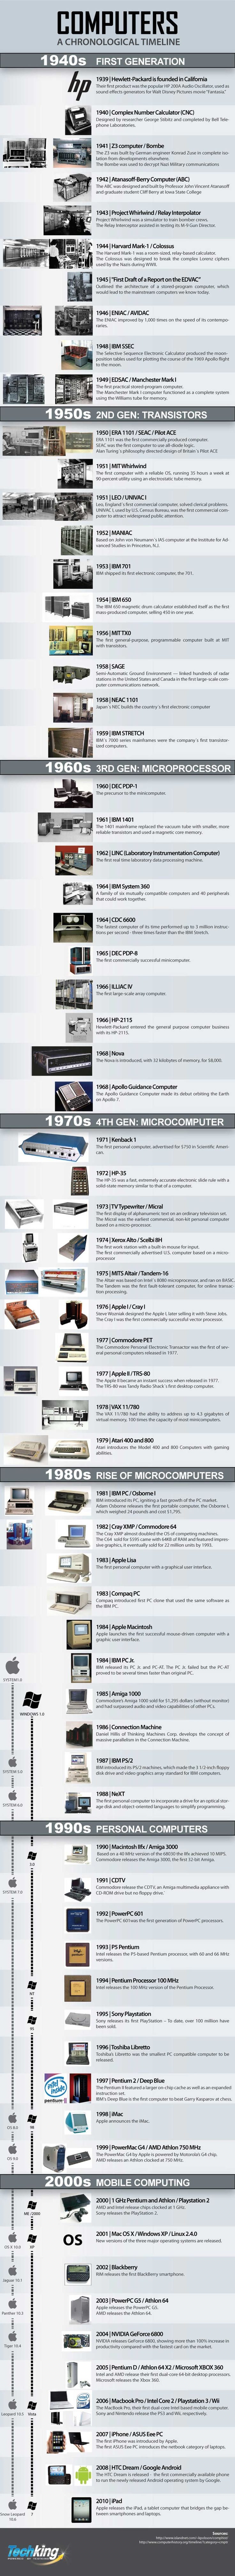 Chronological History of Computers